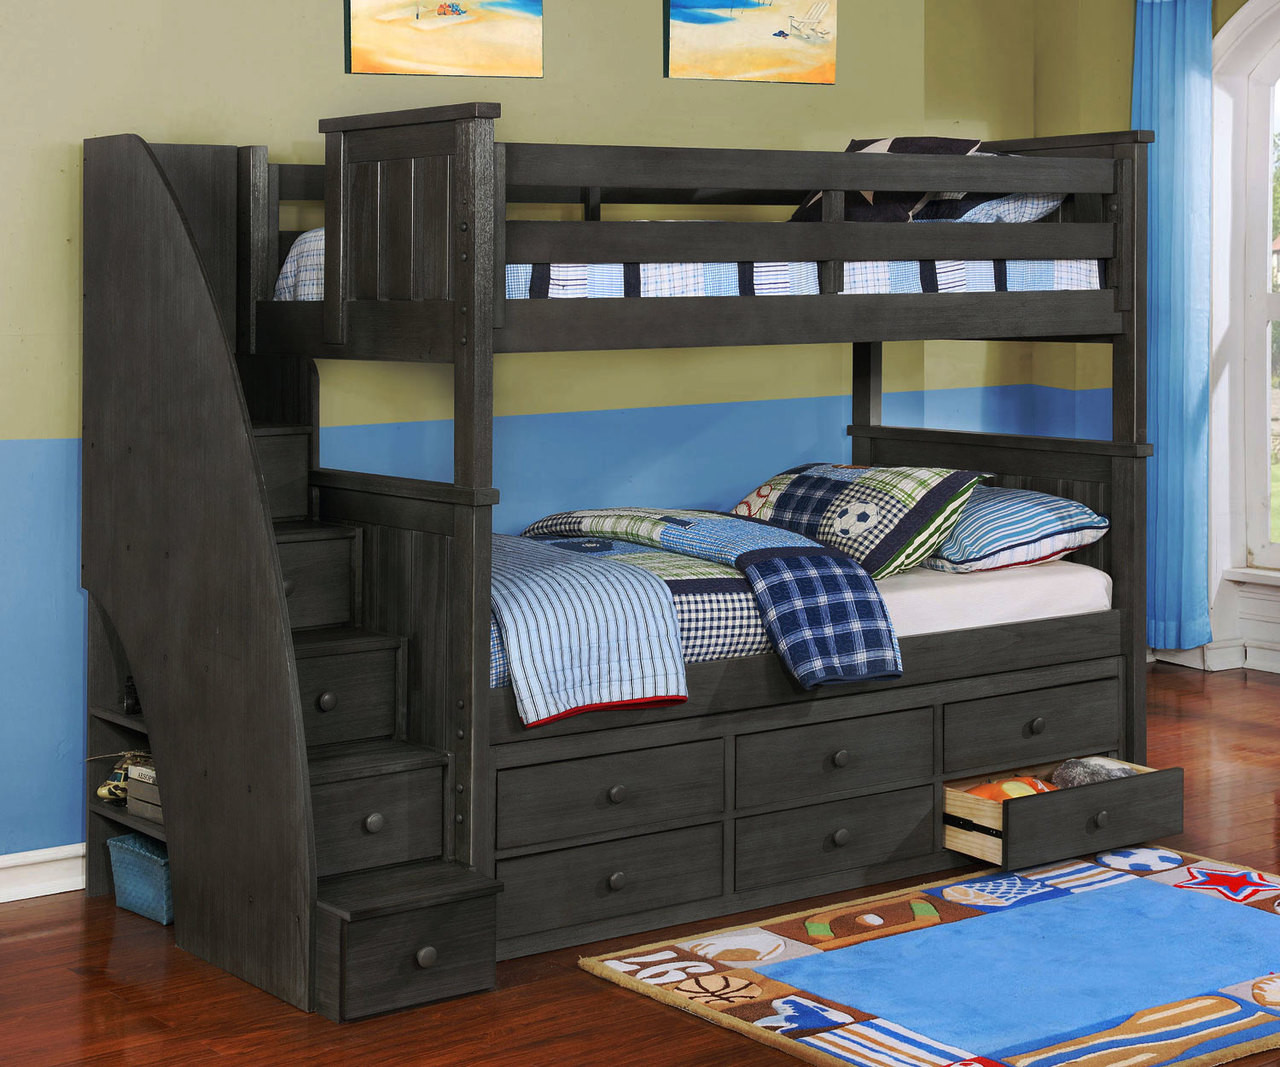 Grey Bunk Beds With Stairs Cheaper Than Retail Price Buy Clothing Accessories And Lifestyle Products For Women Men